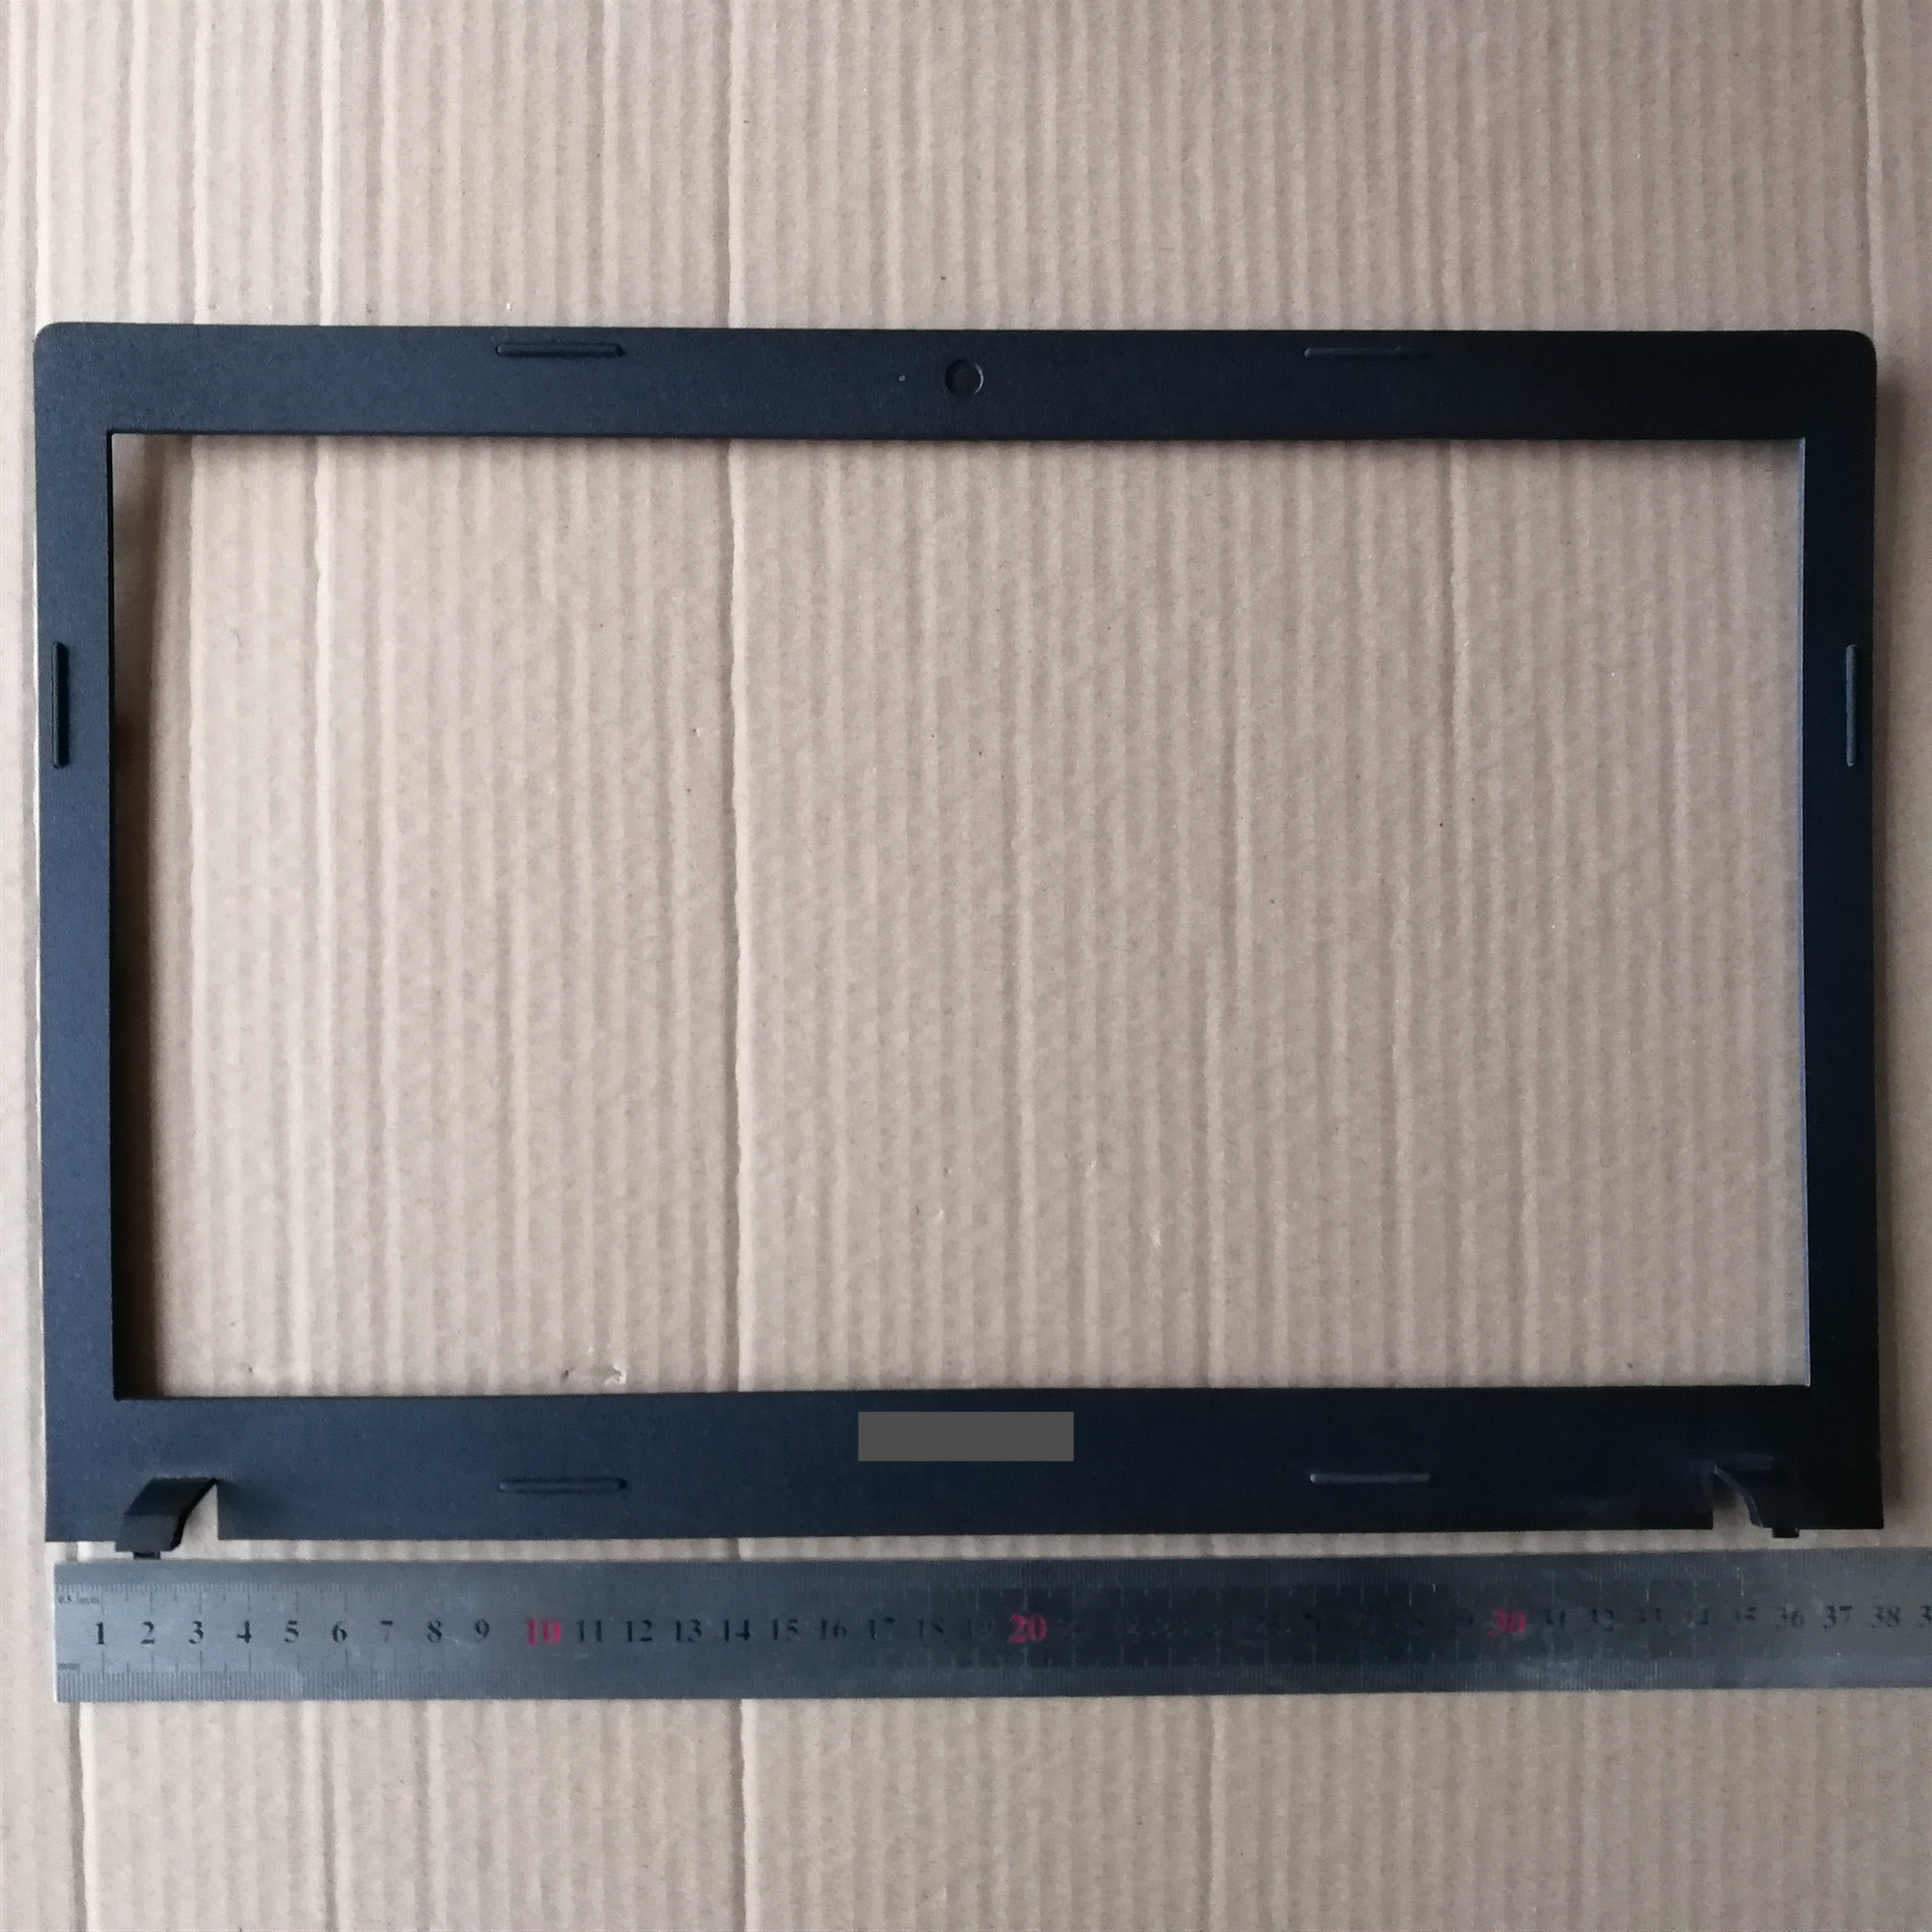 New laptop lcd front bezel cover screen frame for <font><b>Lenovo</b></font> <font><b>G500</b></font> g505 g510 AP0Y0000200 image